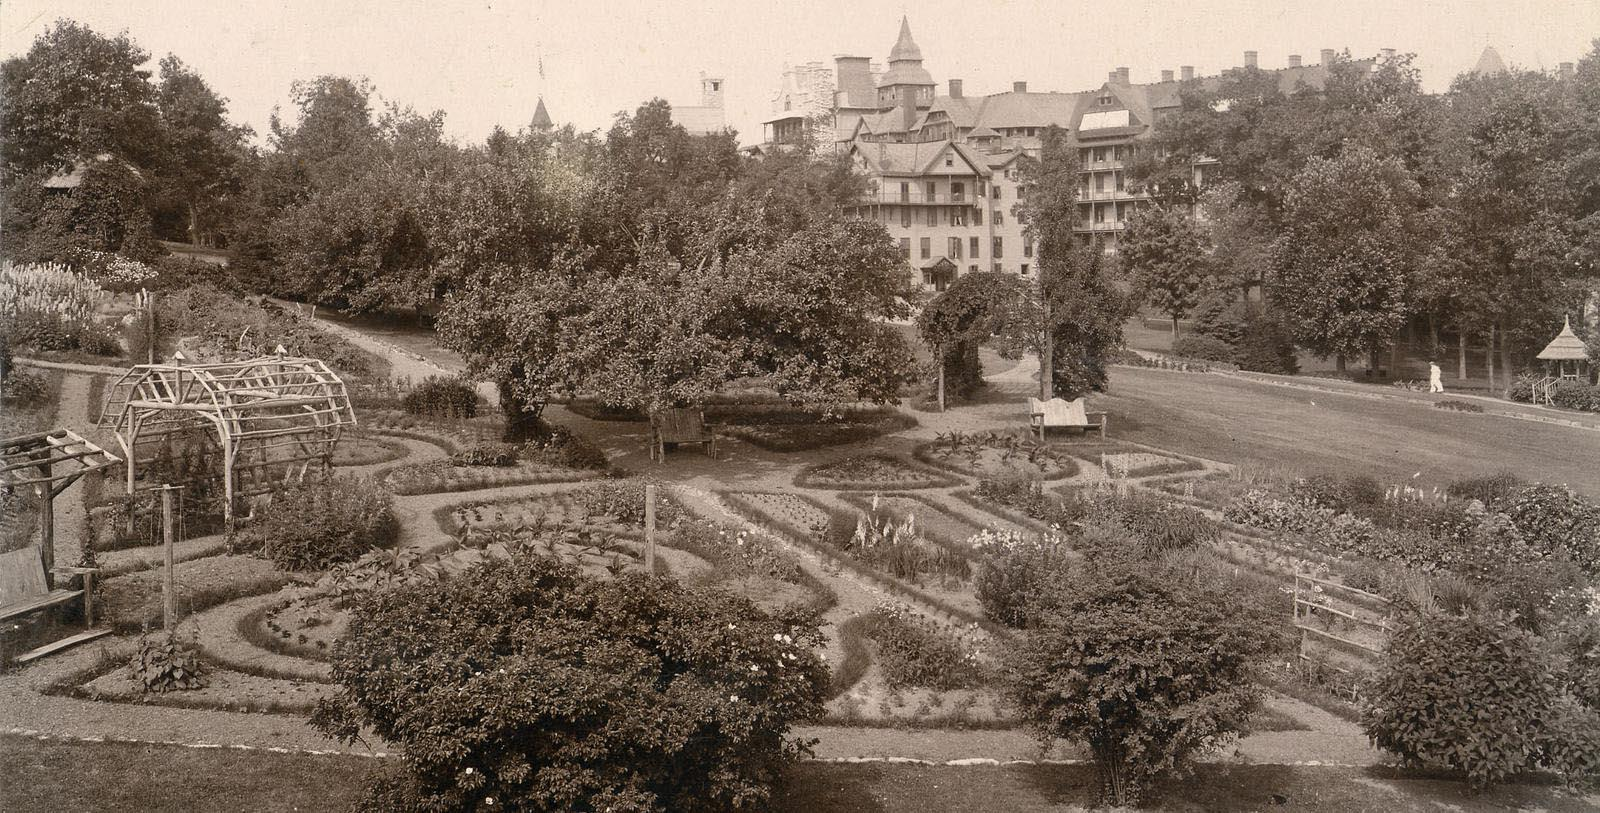 Image of Historic Gardens, Mohonk Mountain House, New Paltz, New York, 1869, Member of Historic Hotels of America, Discover